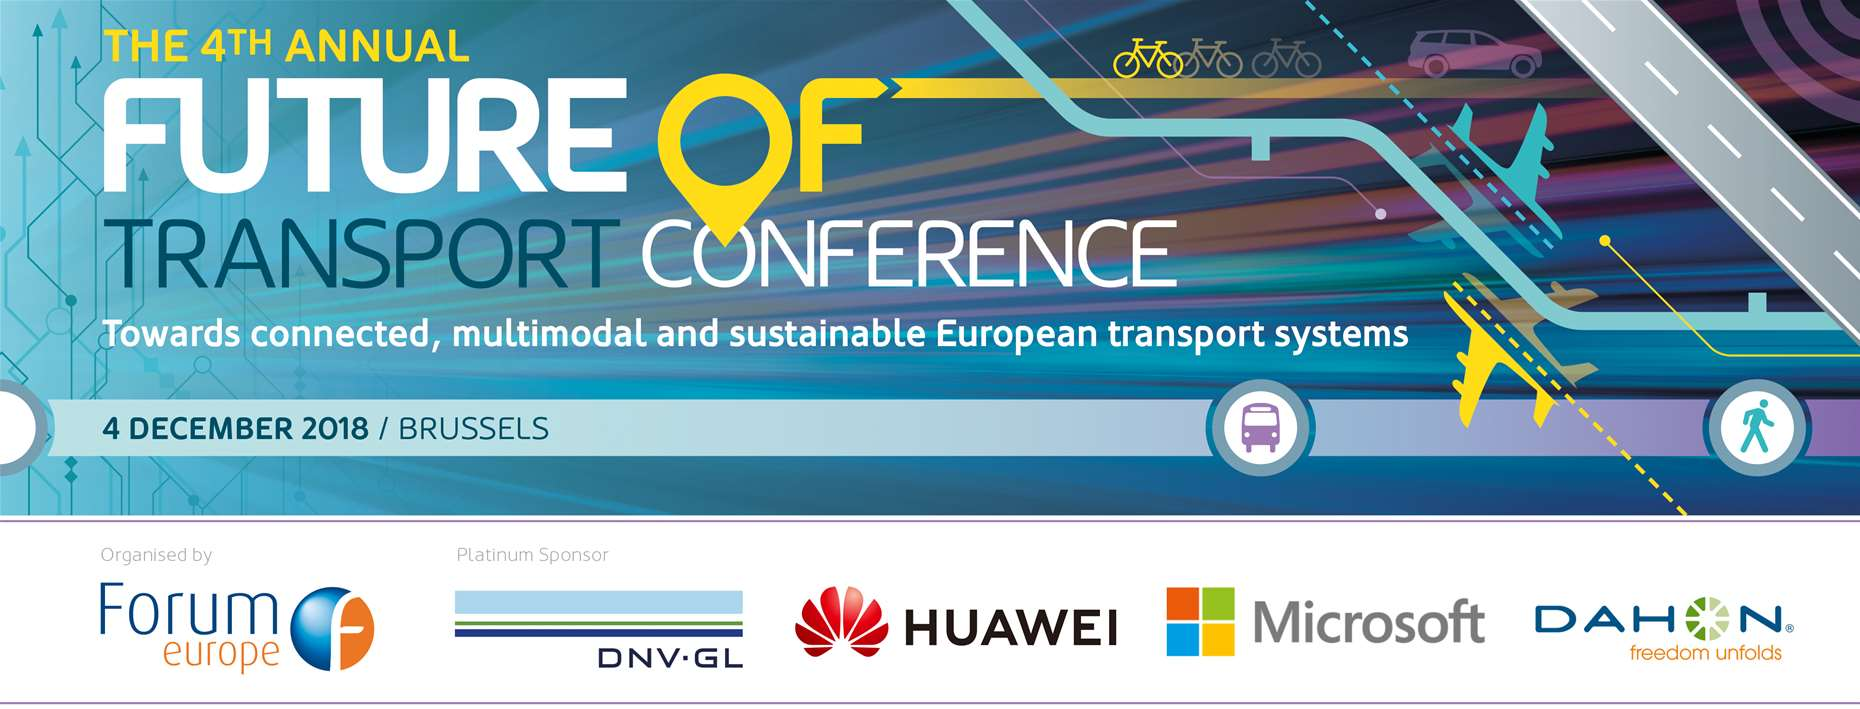 The 4th Annual Future of Transport Conference | Summary